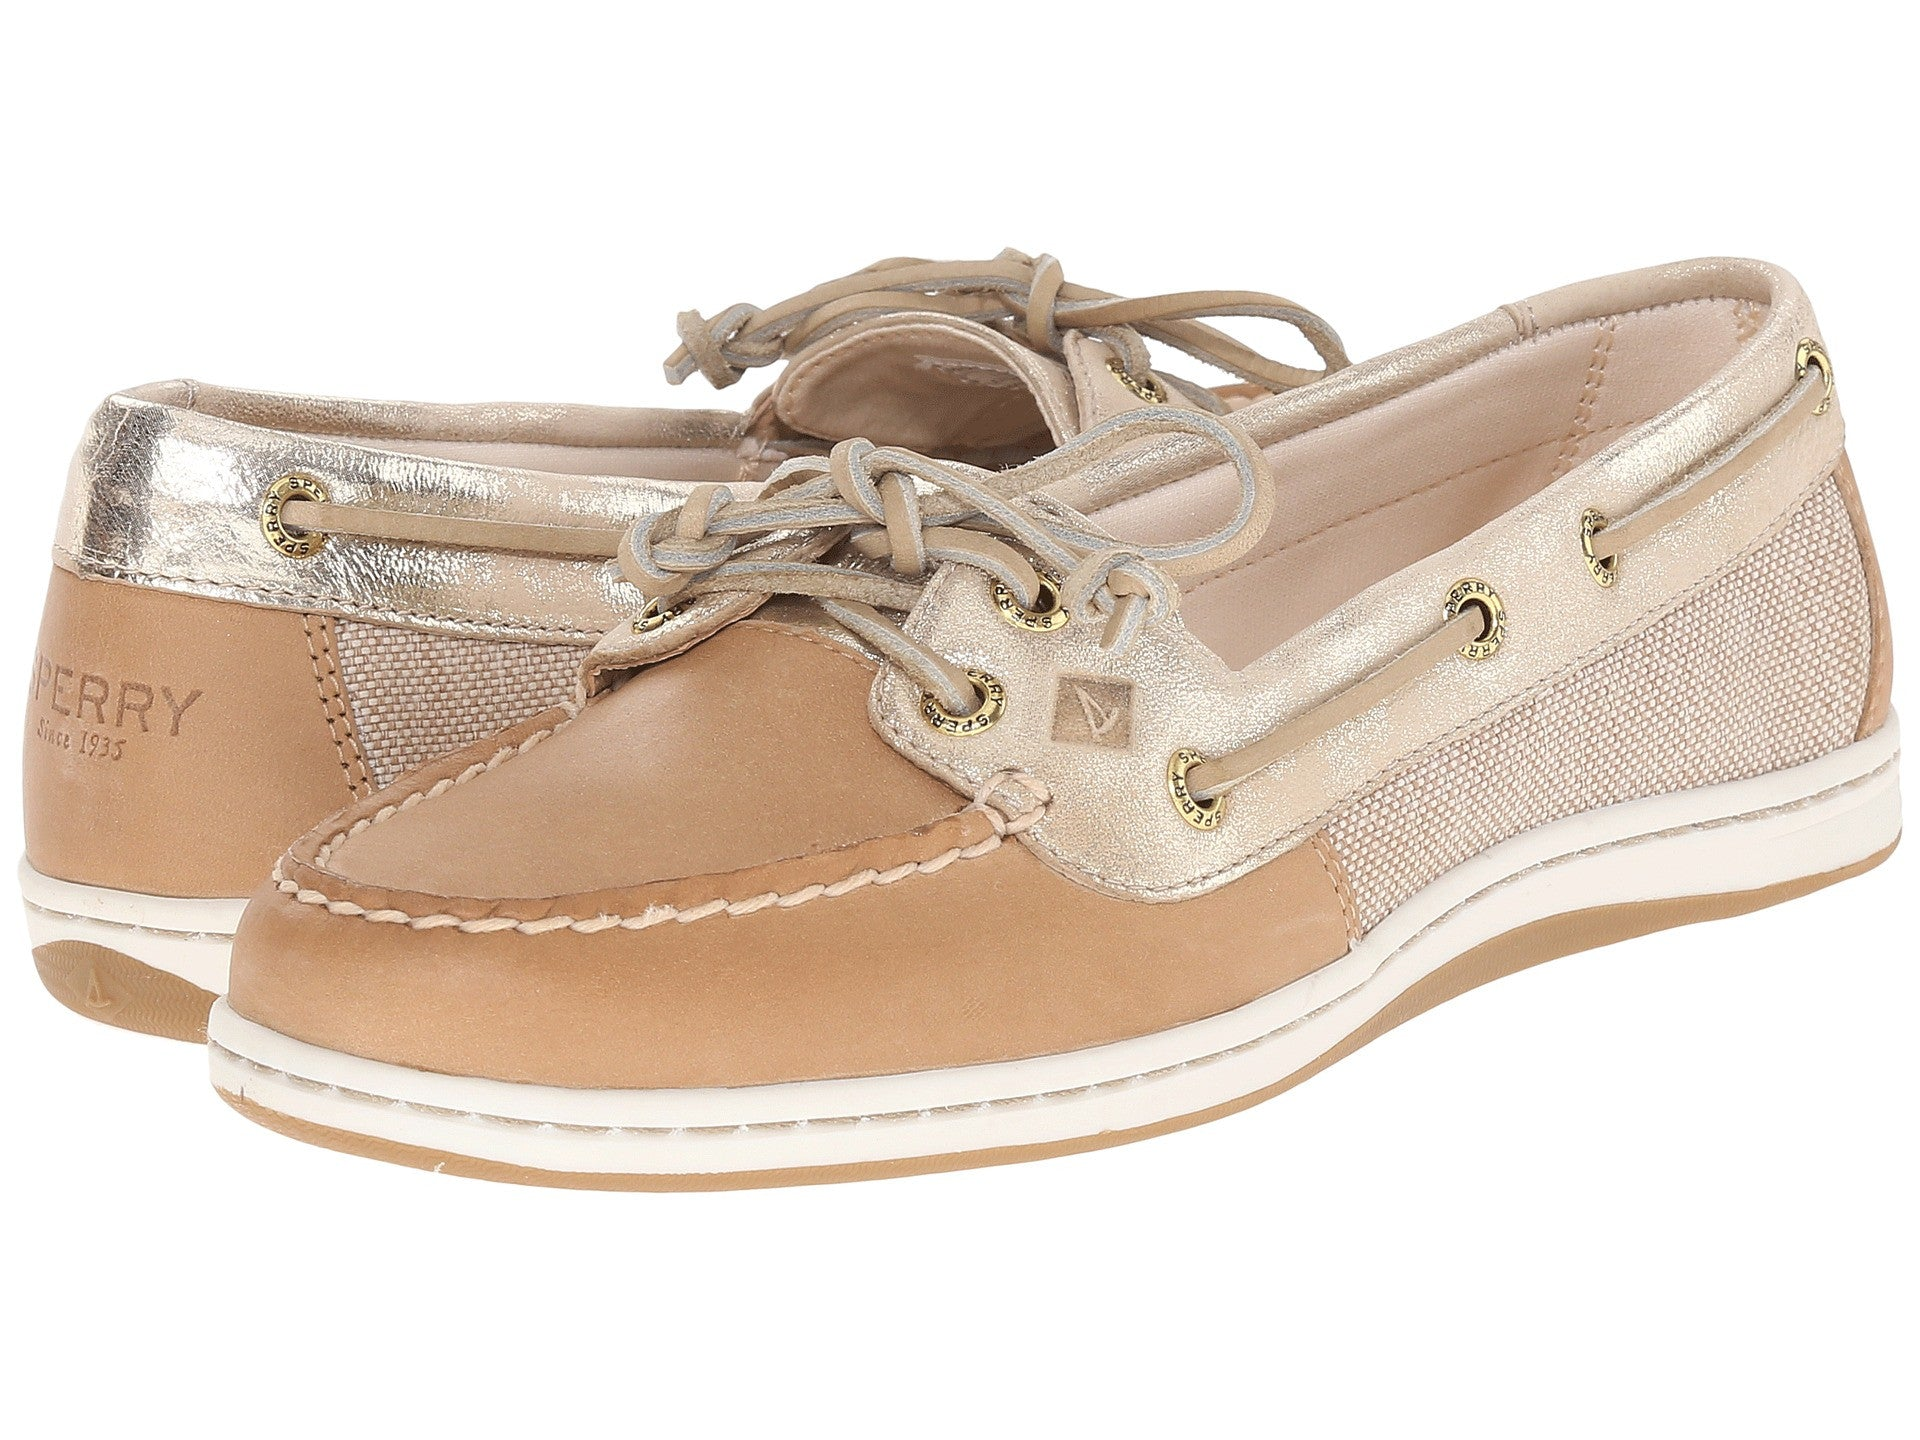 Sperry Women s Firefish Metallic Linen Gold Boat Shoes by Sperry Top-Sider  from THE LUCKY 133b1bb2a